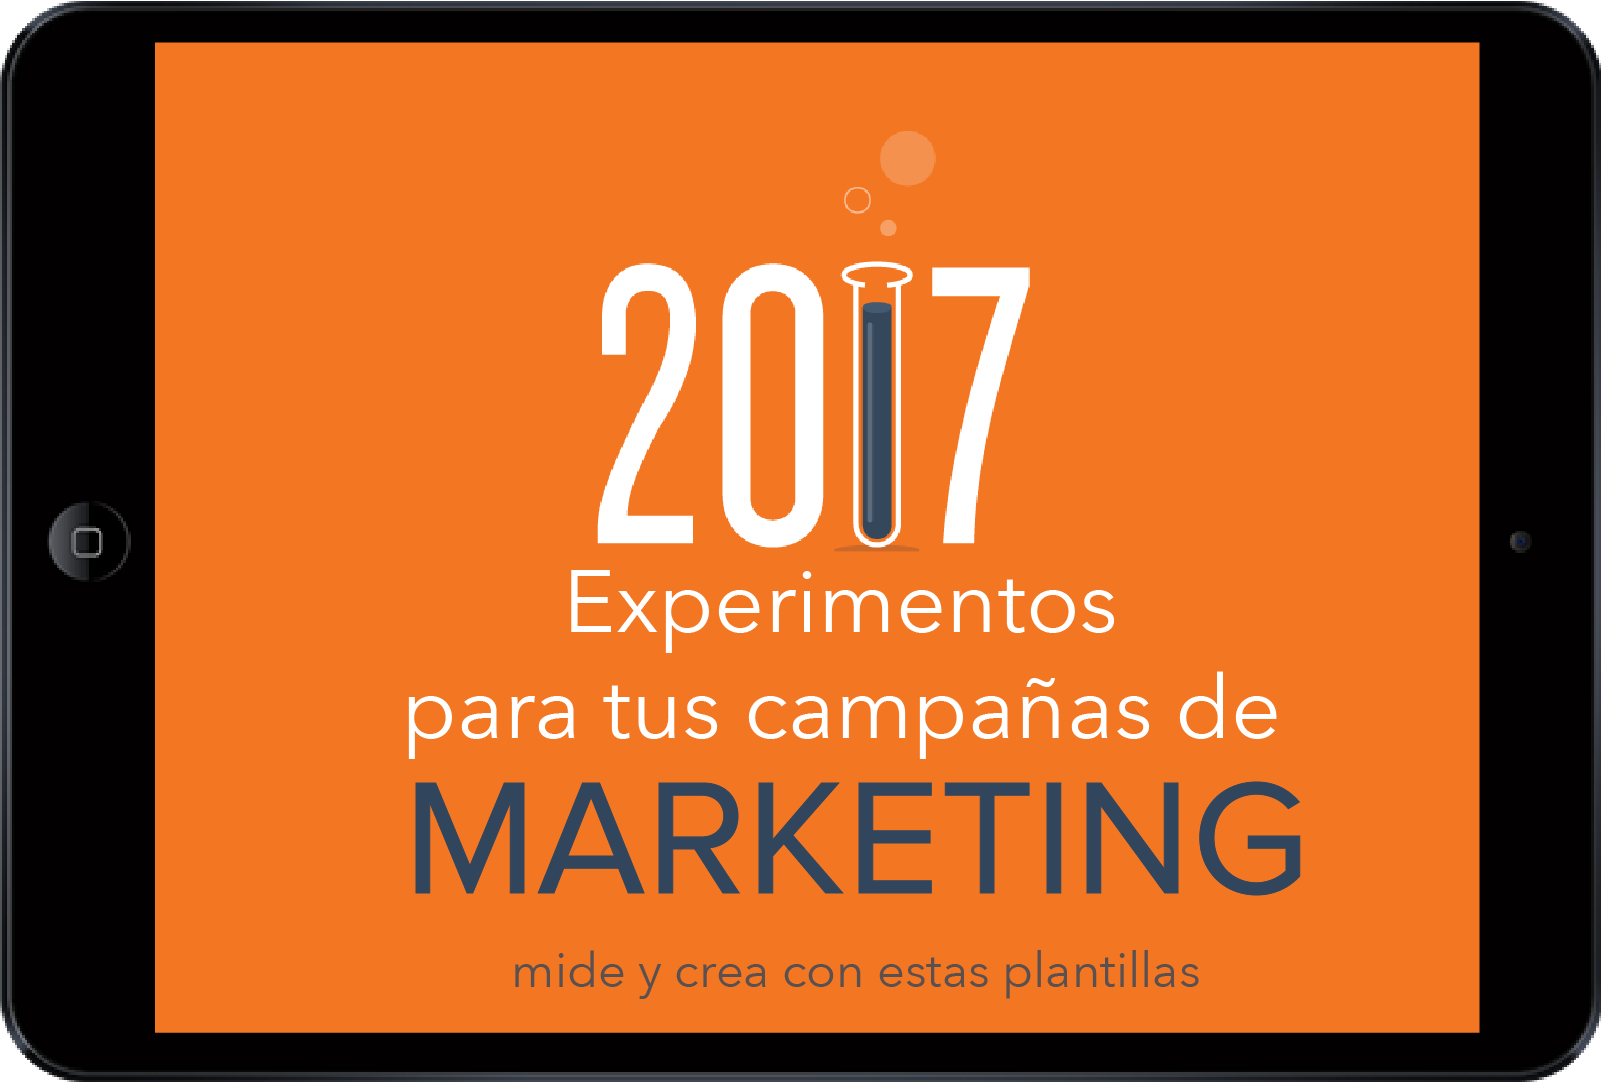 Plantillas para experimentos de marketing de crecimiento 2017